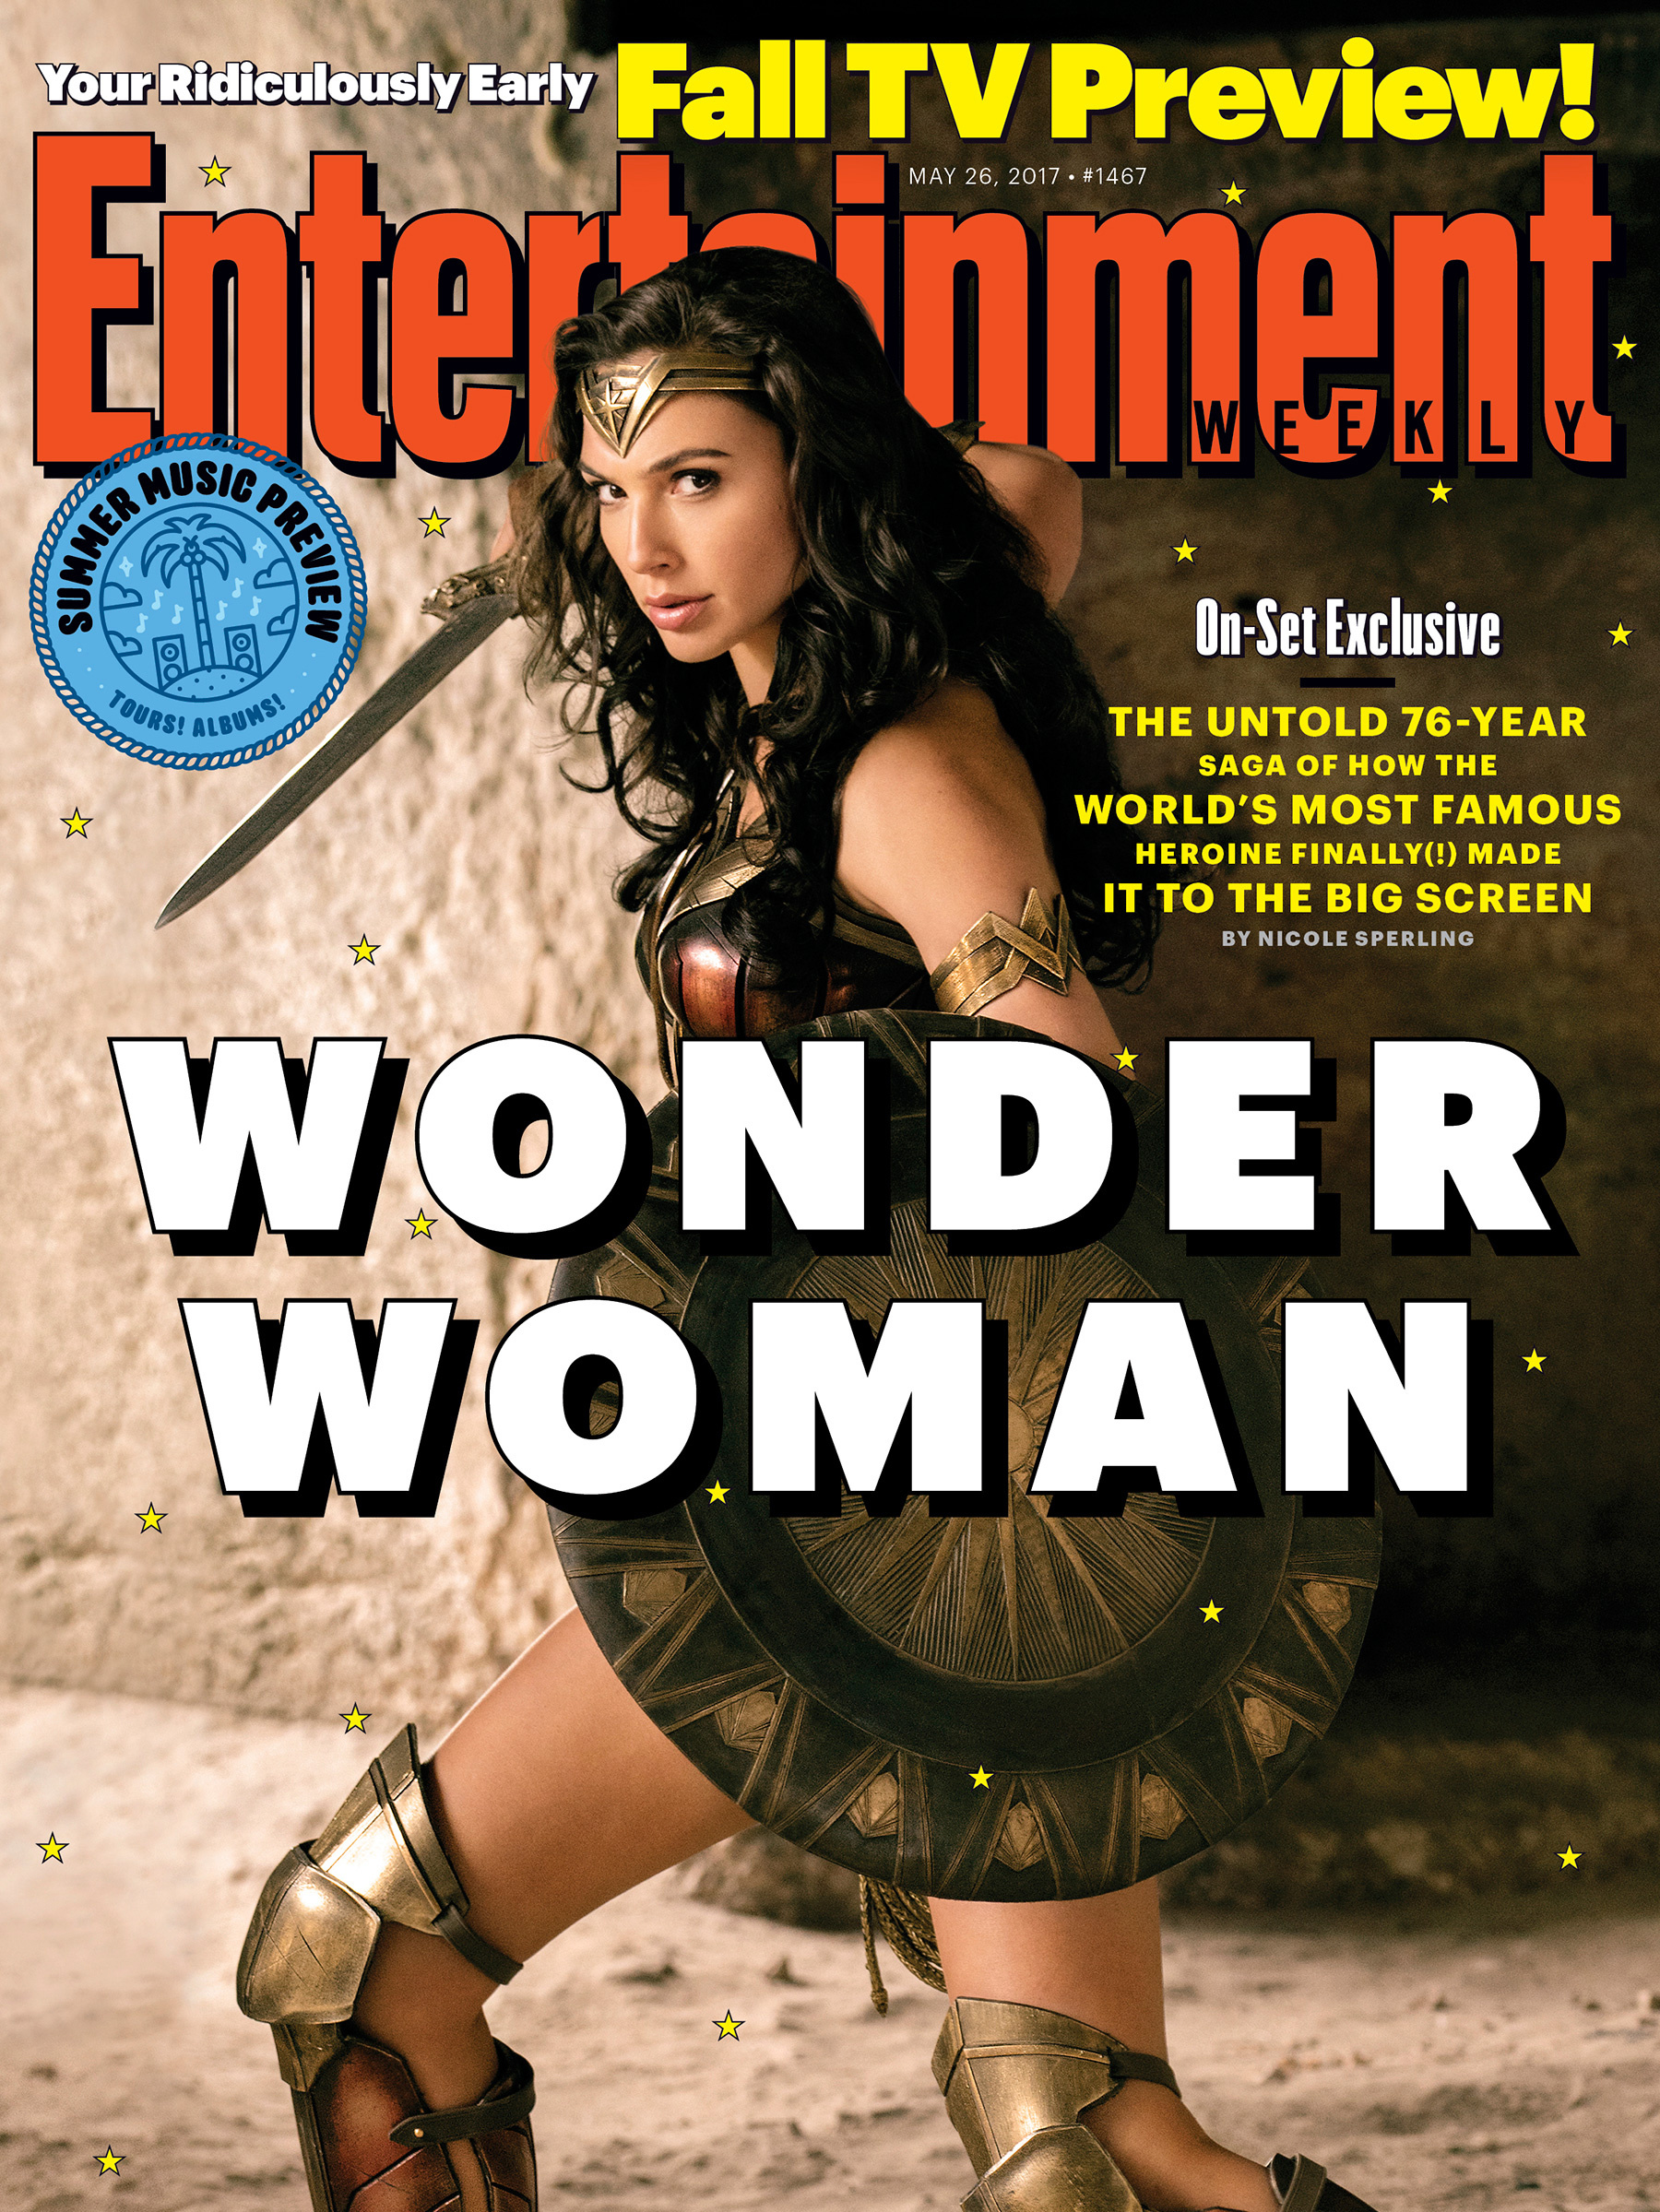 New magazine cover featuring Diana Prince